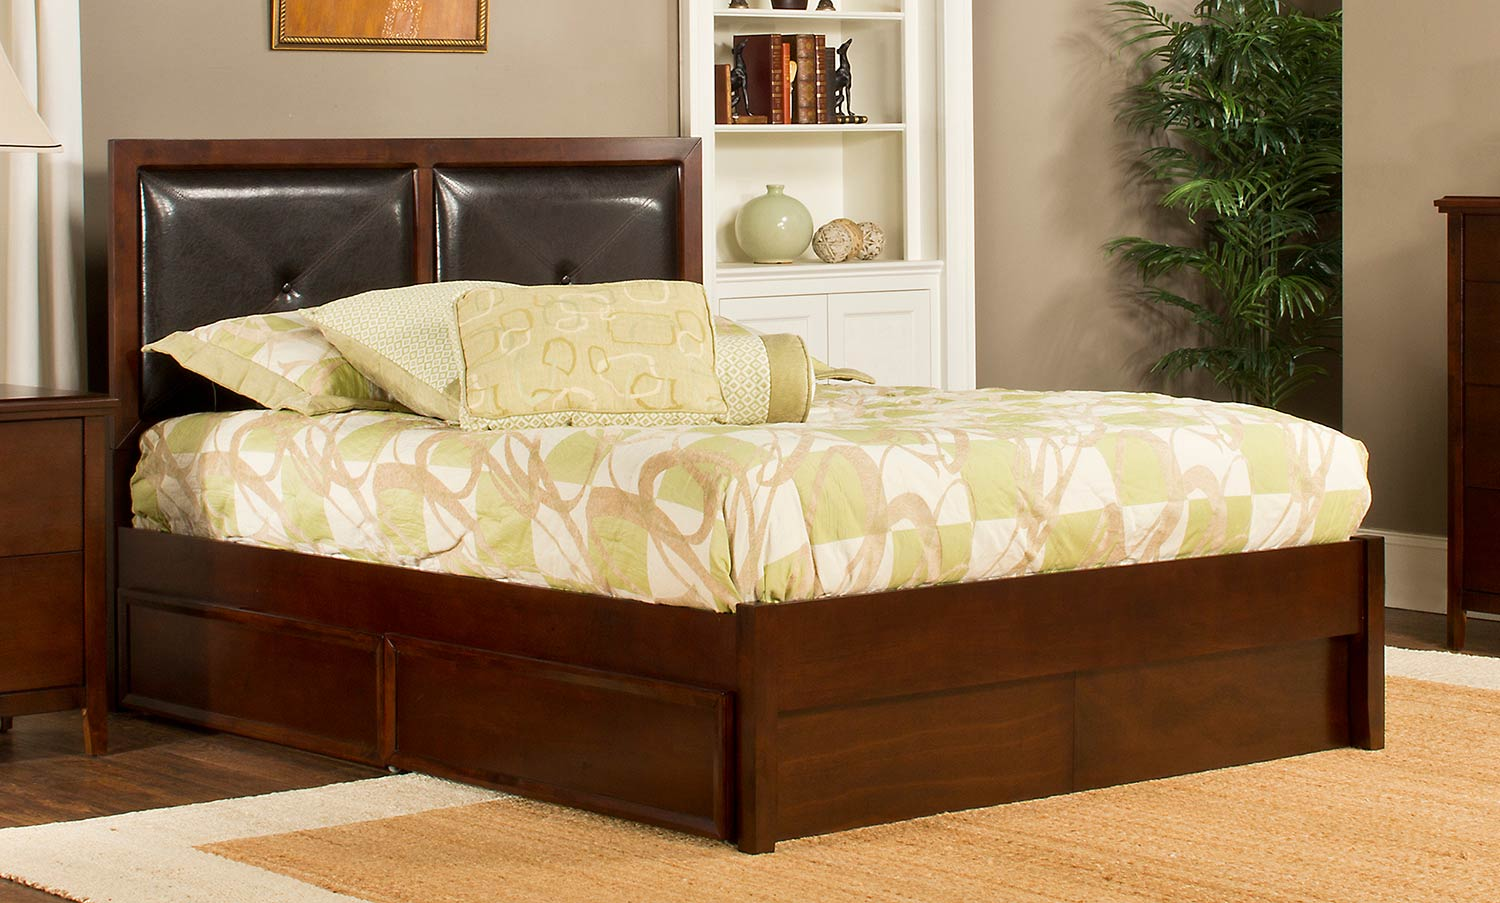 Hillsdale Metro Martin Storage Bed - Cherry